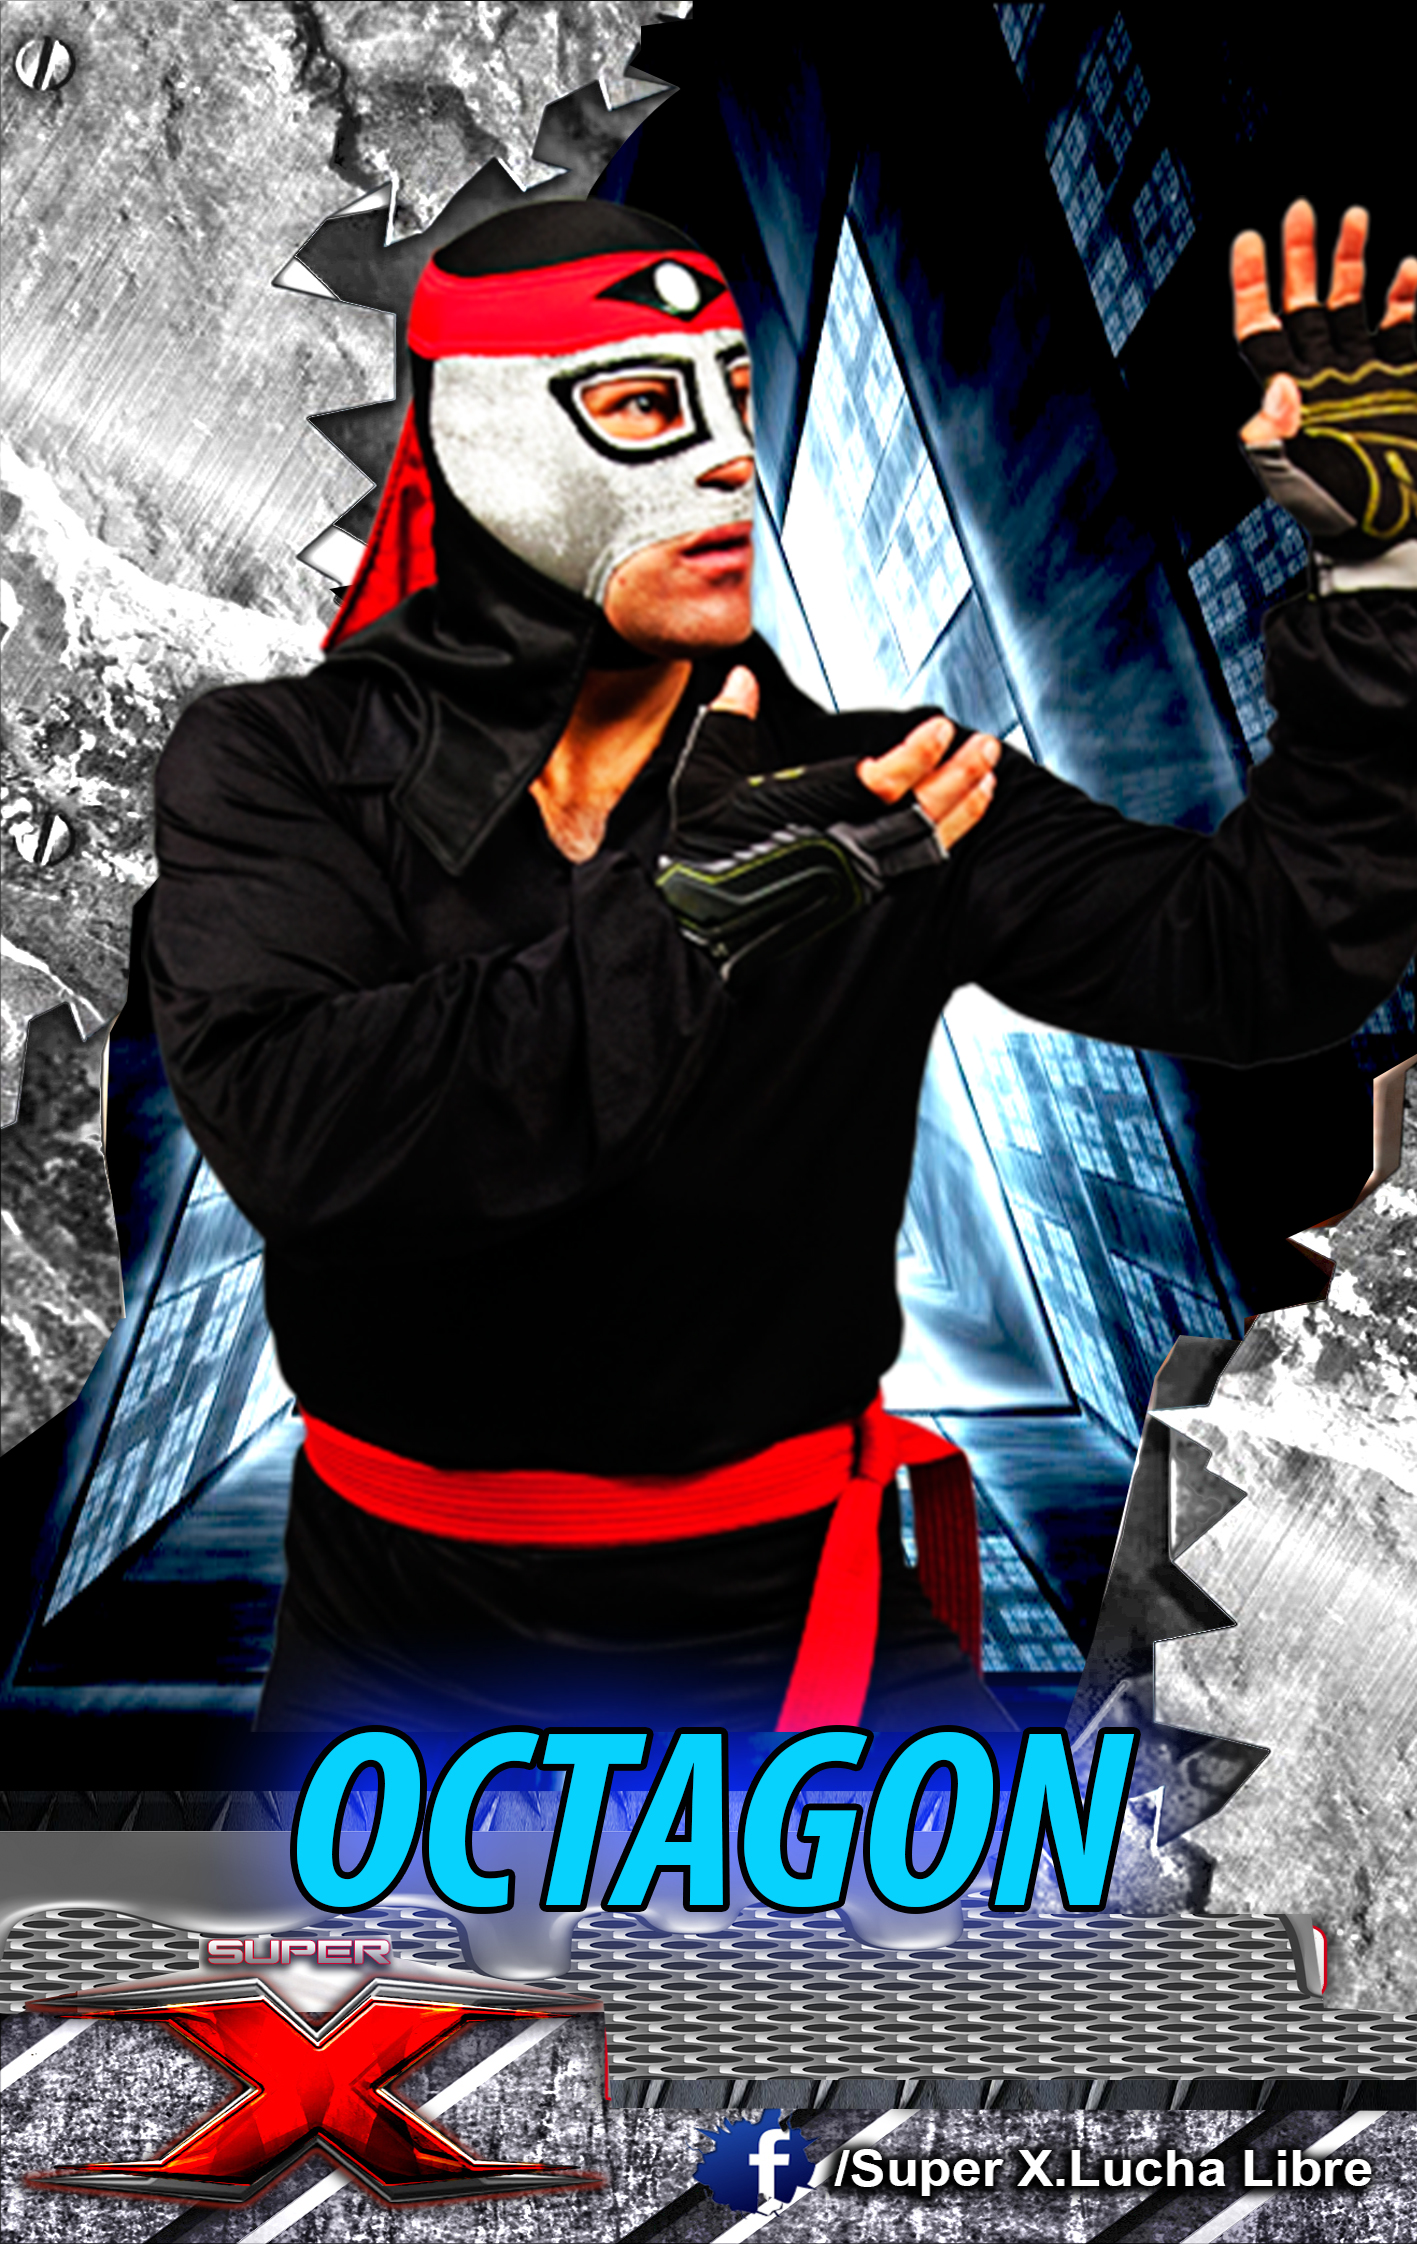 OCTAGON-SUPER-X.